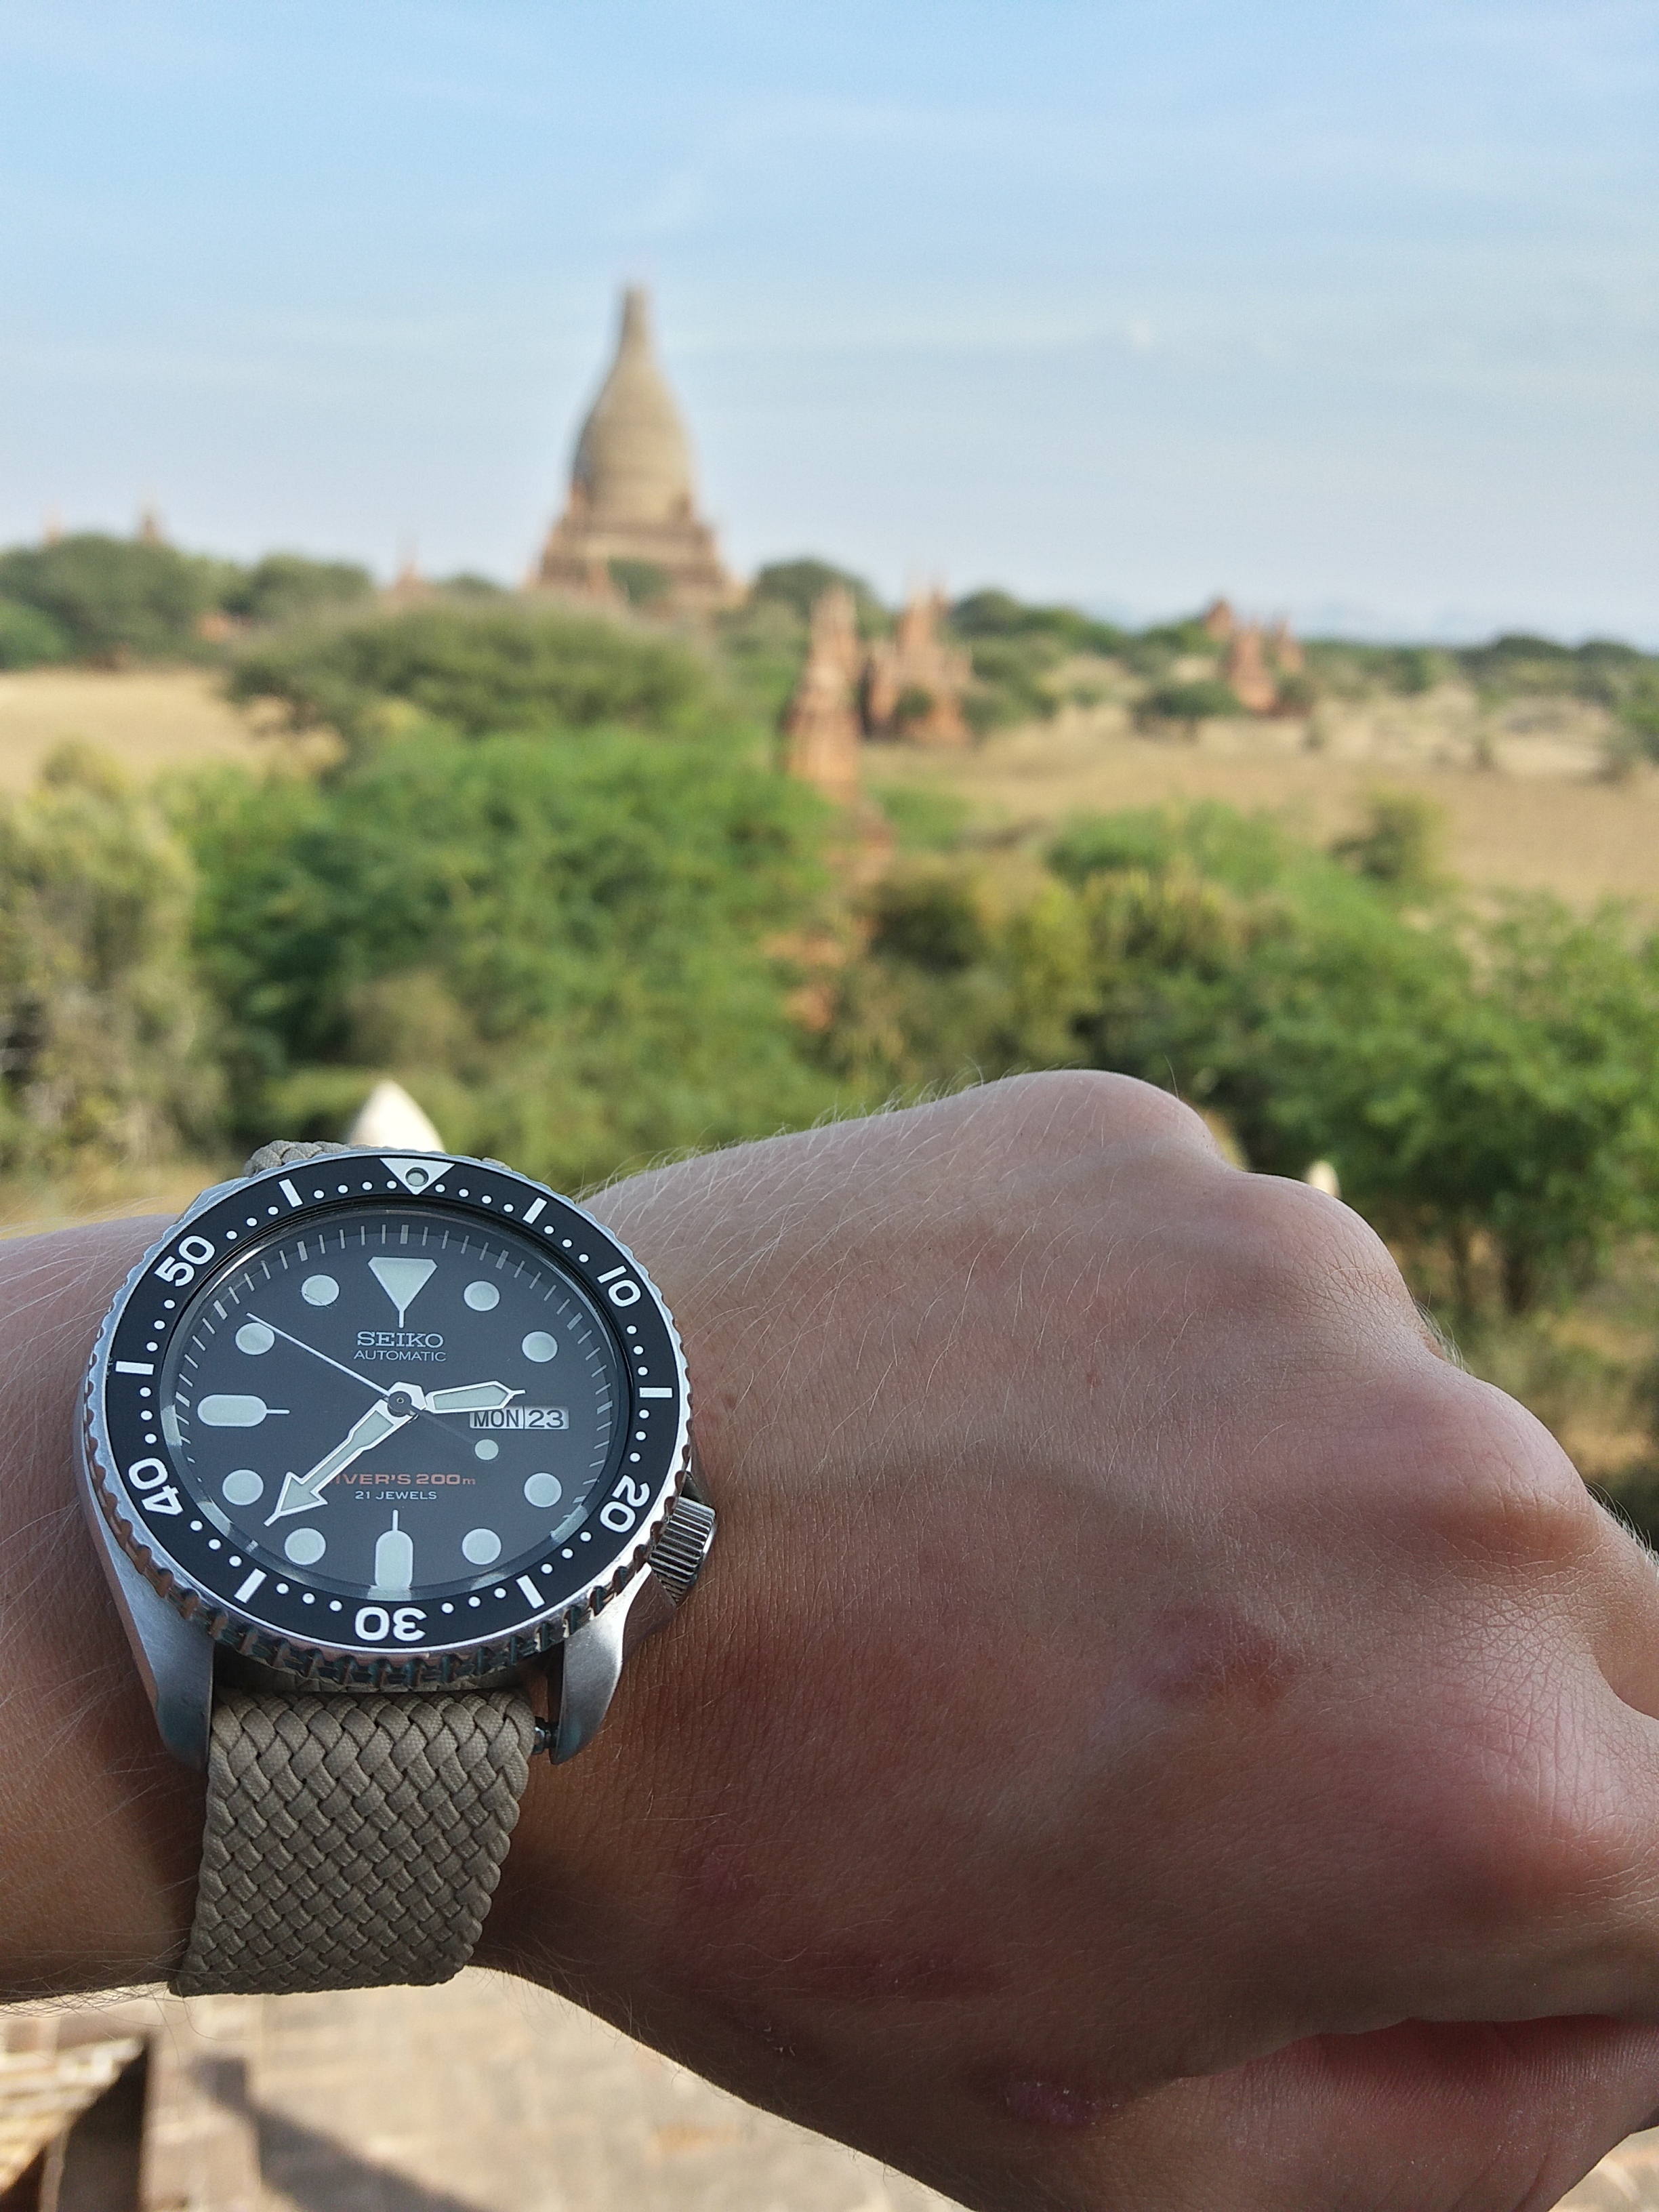 The SKX was tightly strapped to my wrist in Bagan, Myanmar.